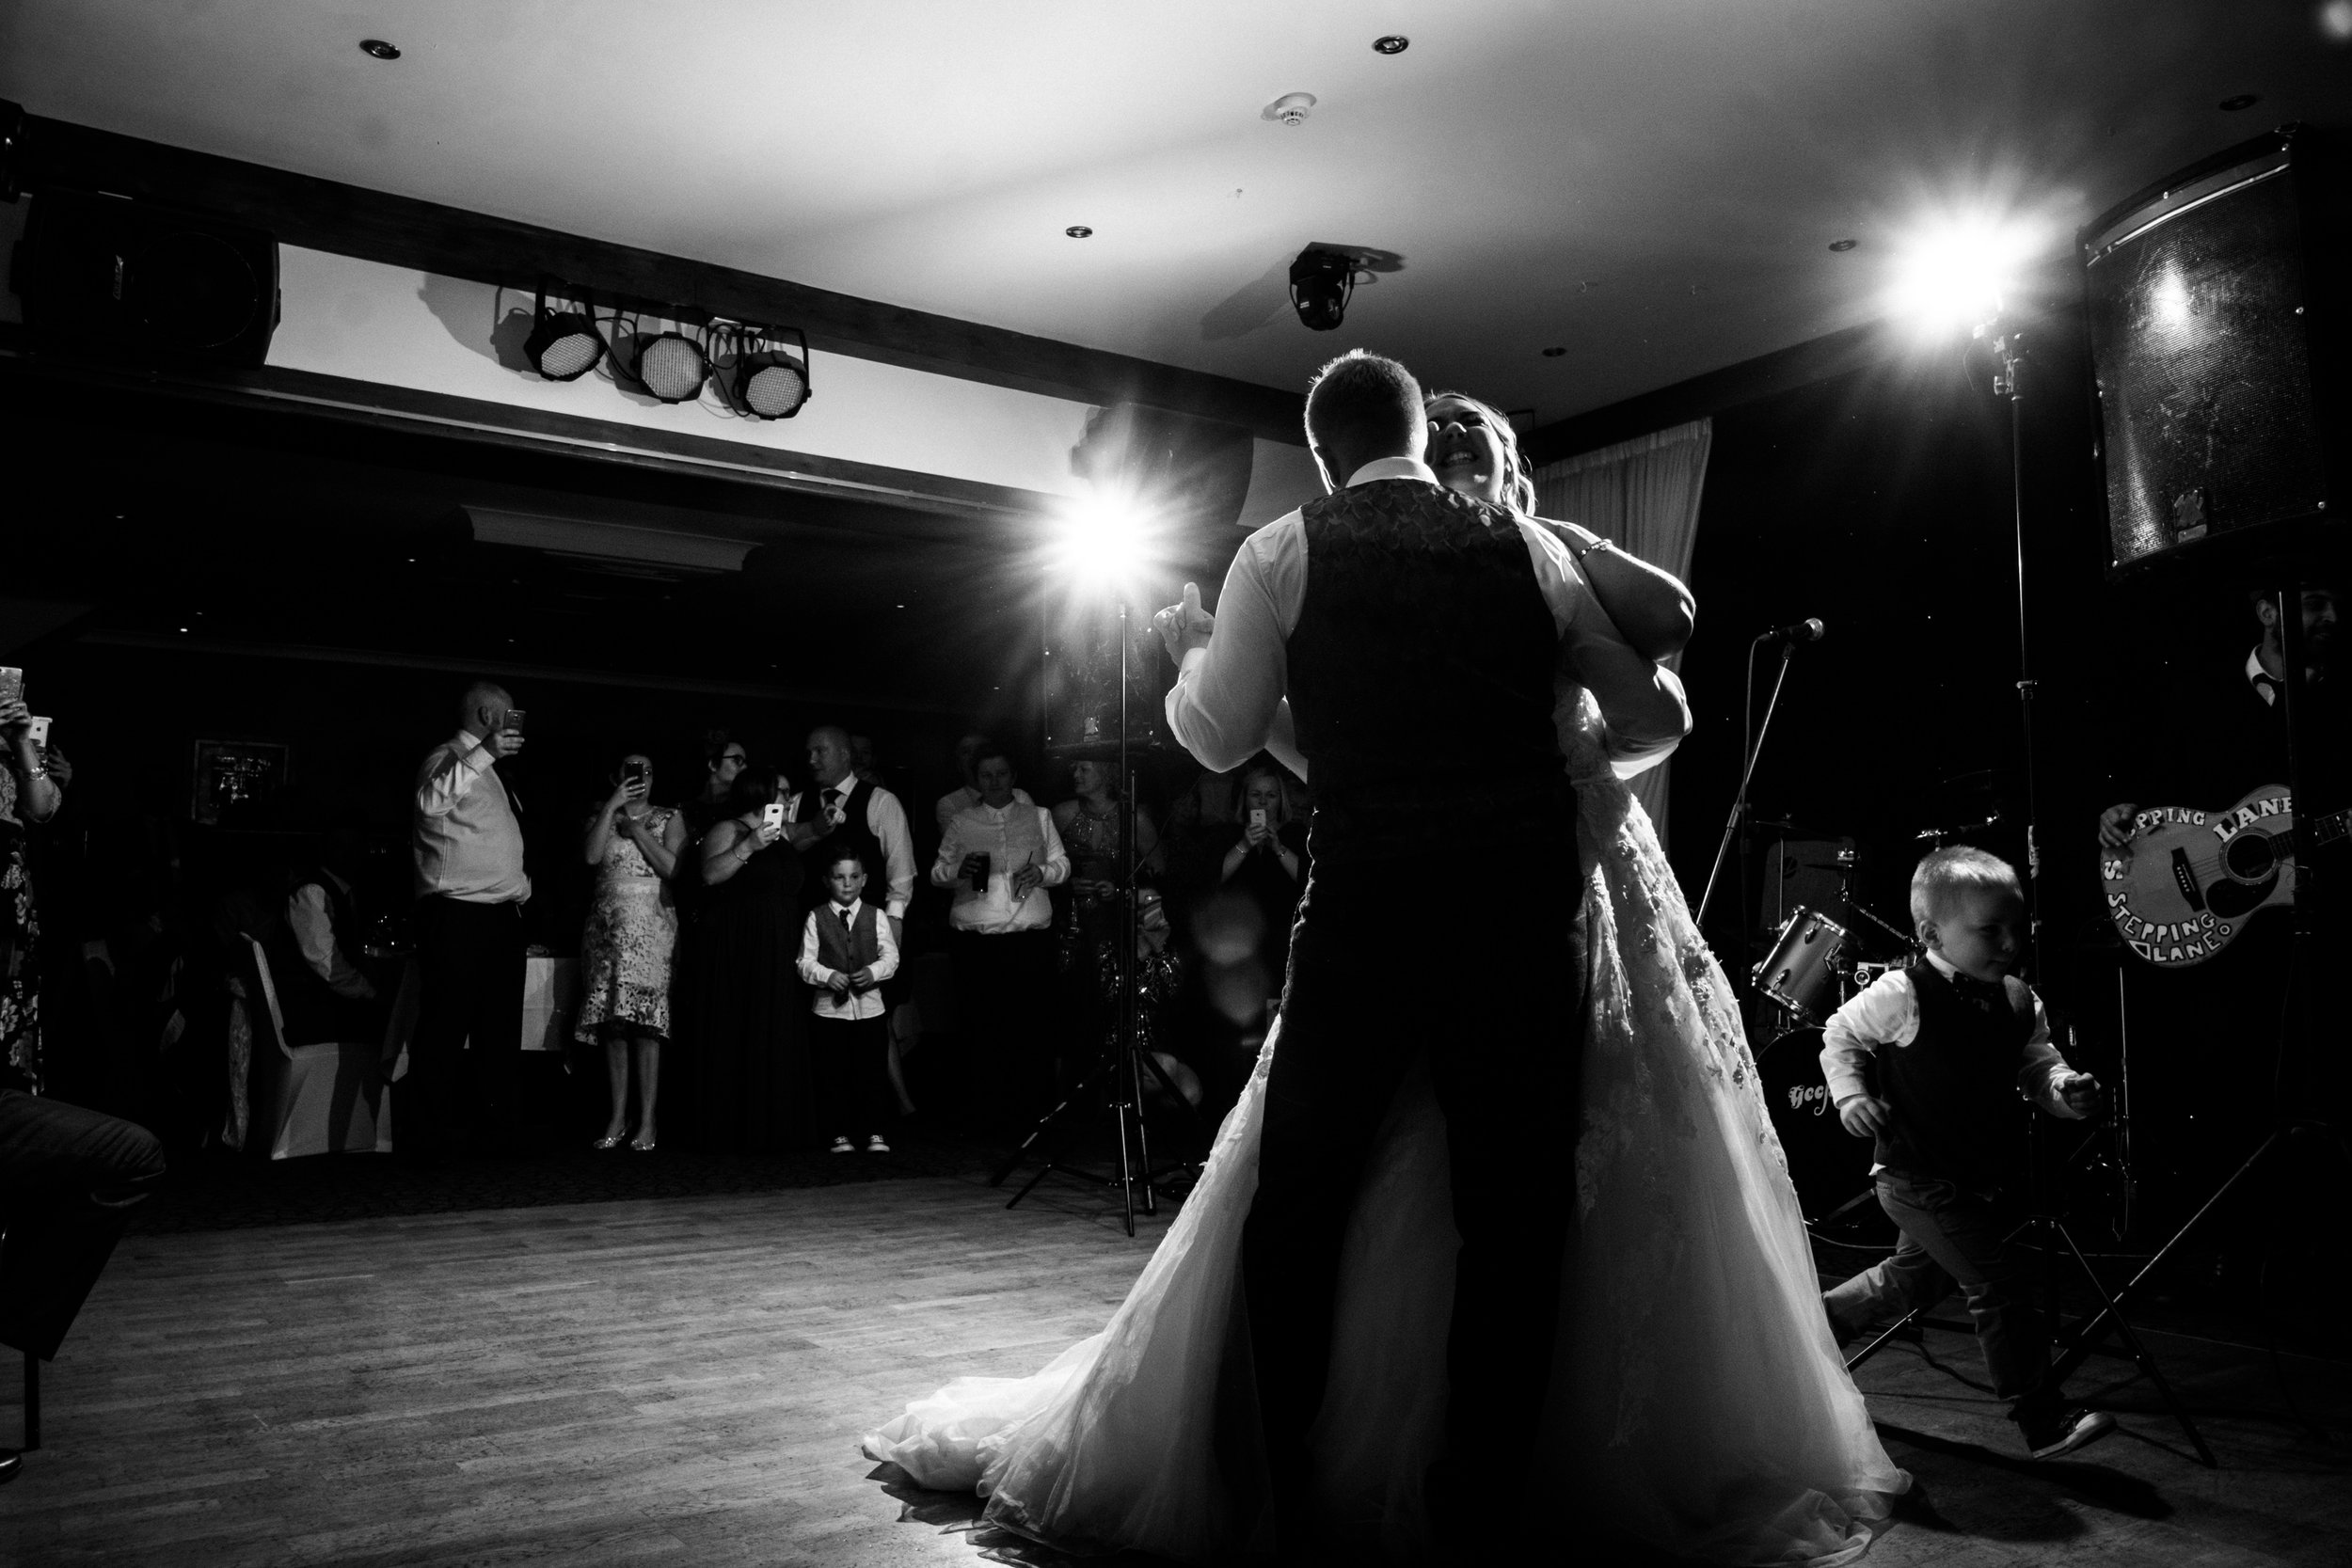 Autumn Wedding Photography at The Three Horseshoes, Blackshaw Moor, Staffordshire Moorlands - Jenny Harper-55.jpg